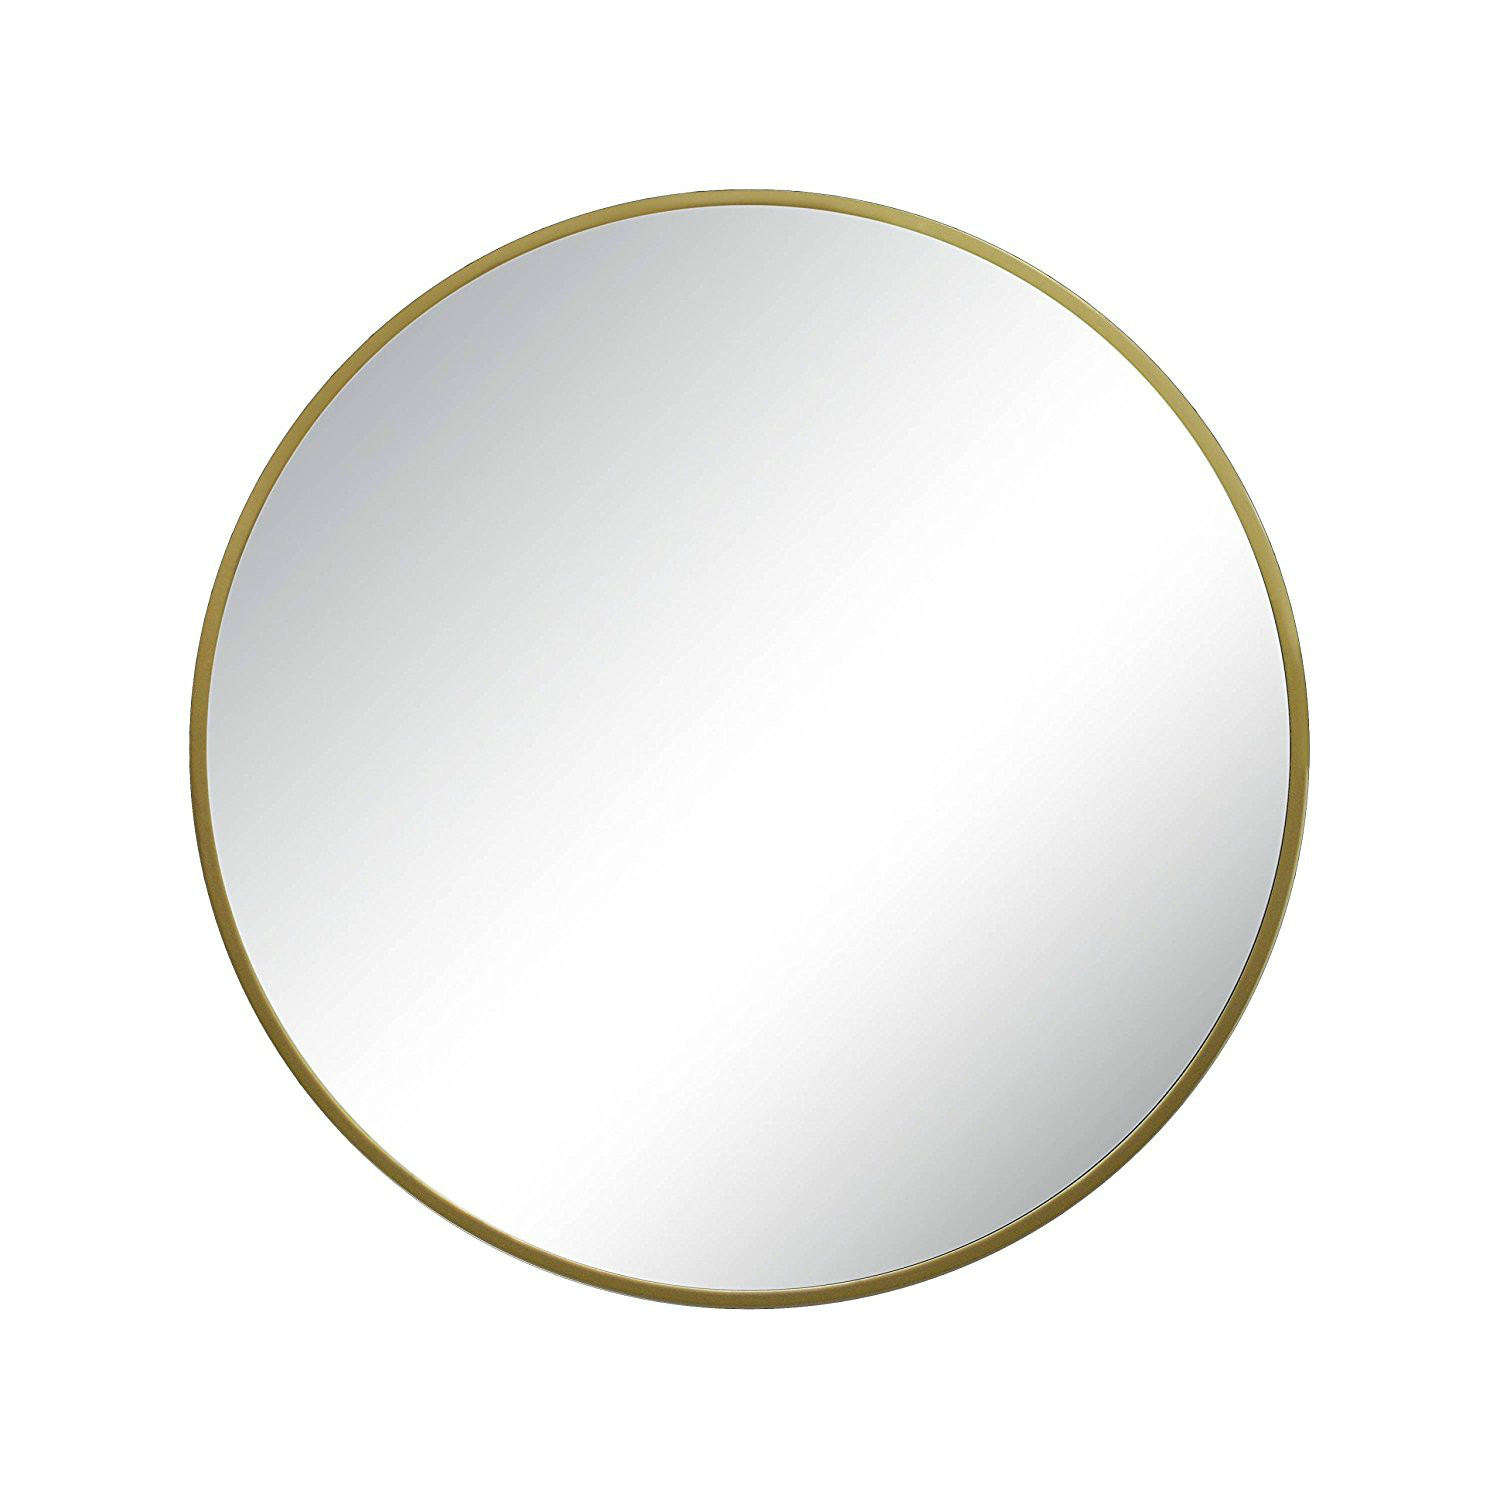 decorative usage stainless steel plating metal glass round wall mirror